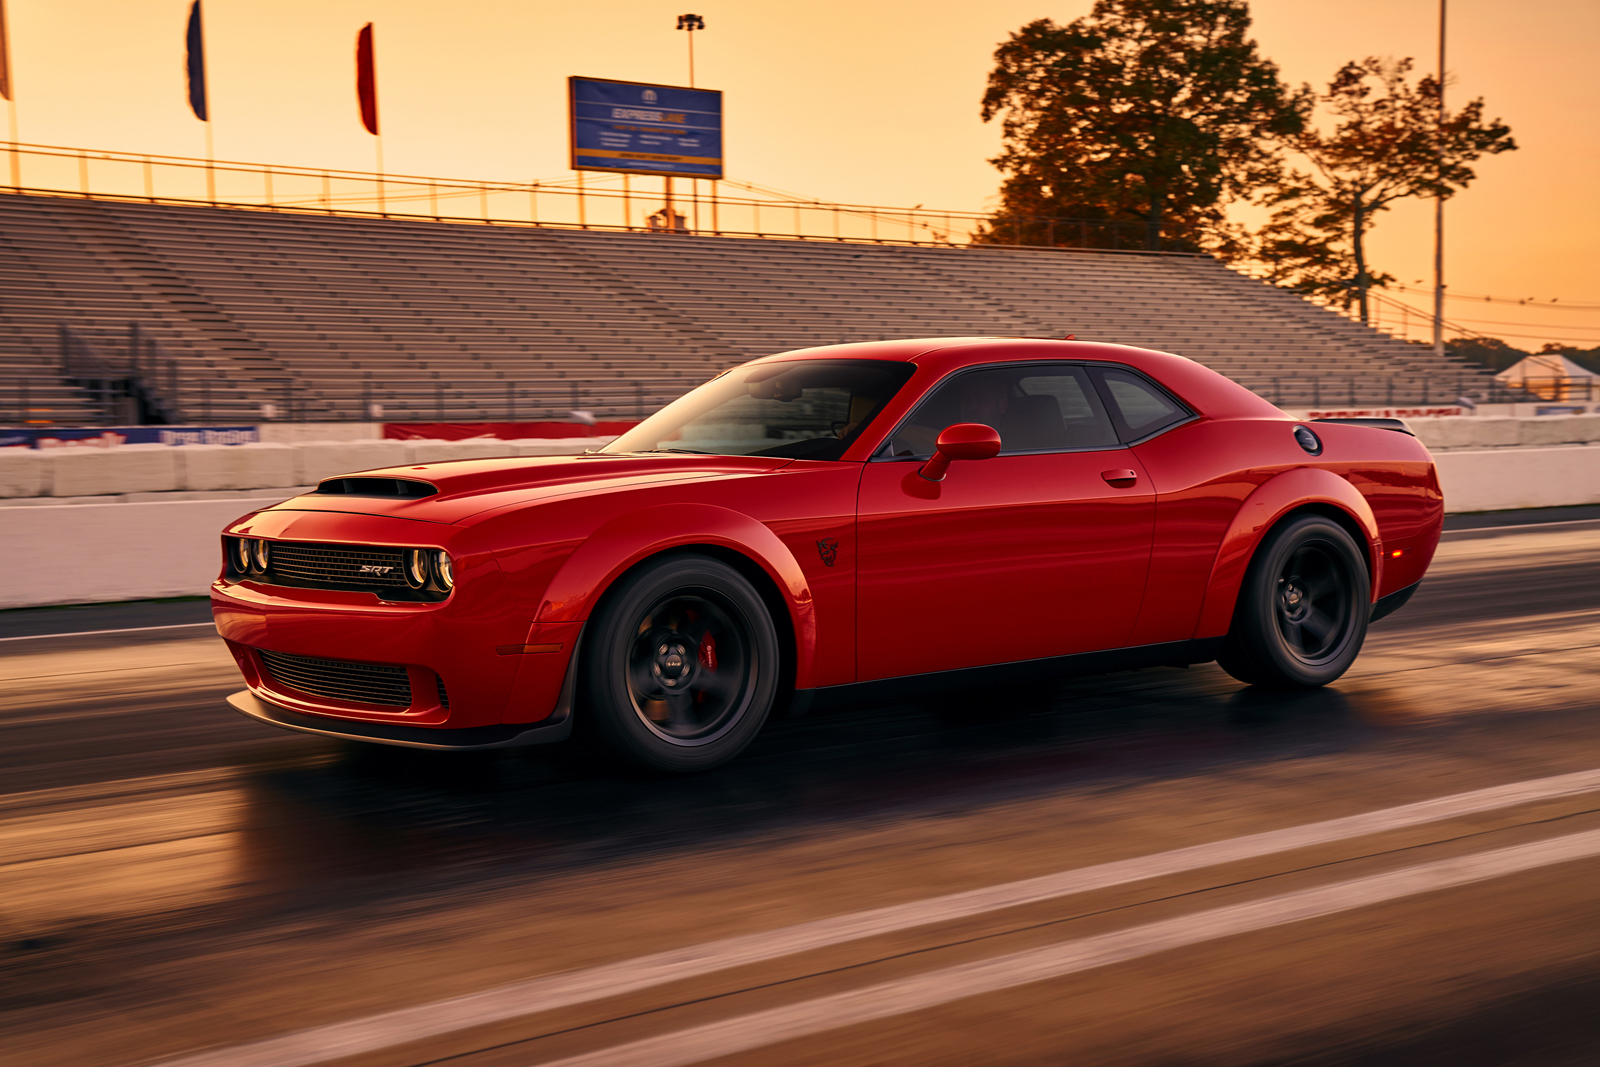 2018 Charger Demon >> Will The Dodge Challenger SRT Demon Have 1,023 HP?